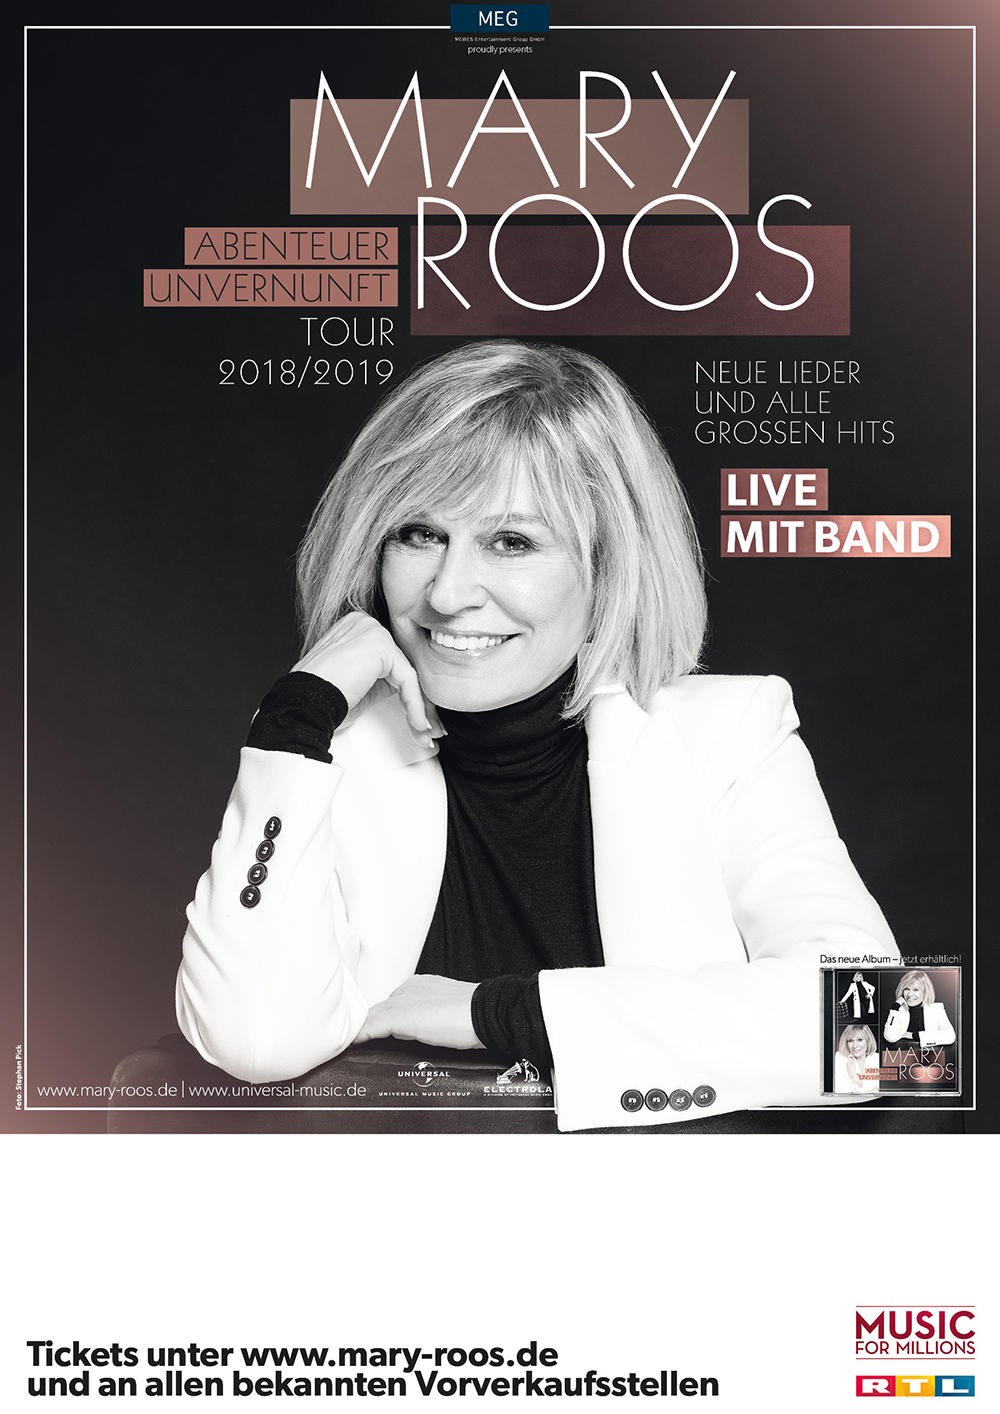 MARY ROOS Tickets